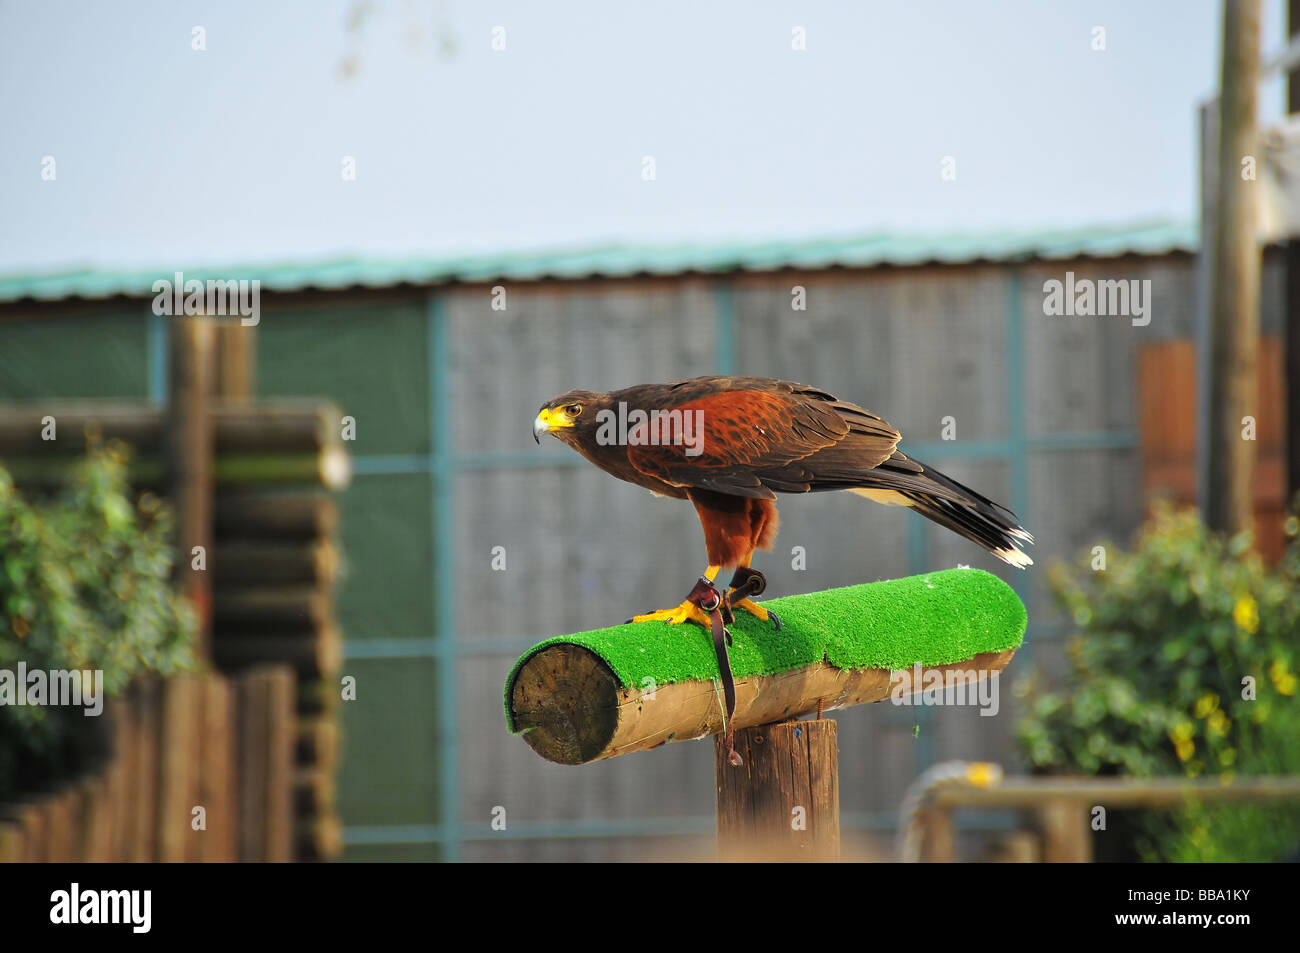 a harris or dusky hawk from a falconry centre ready to take off - Stock Image